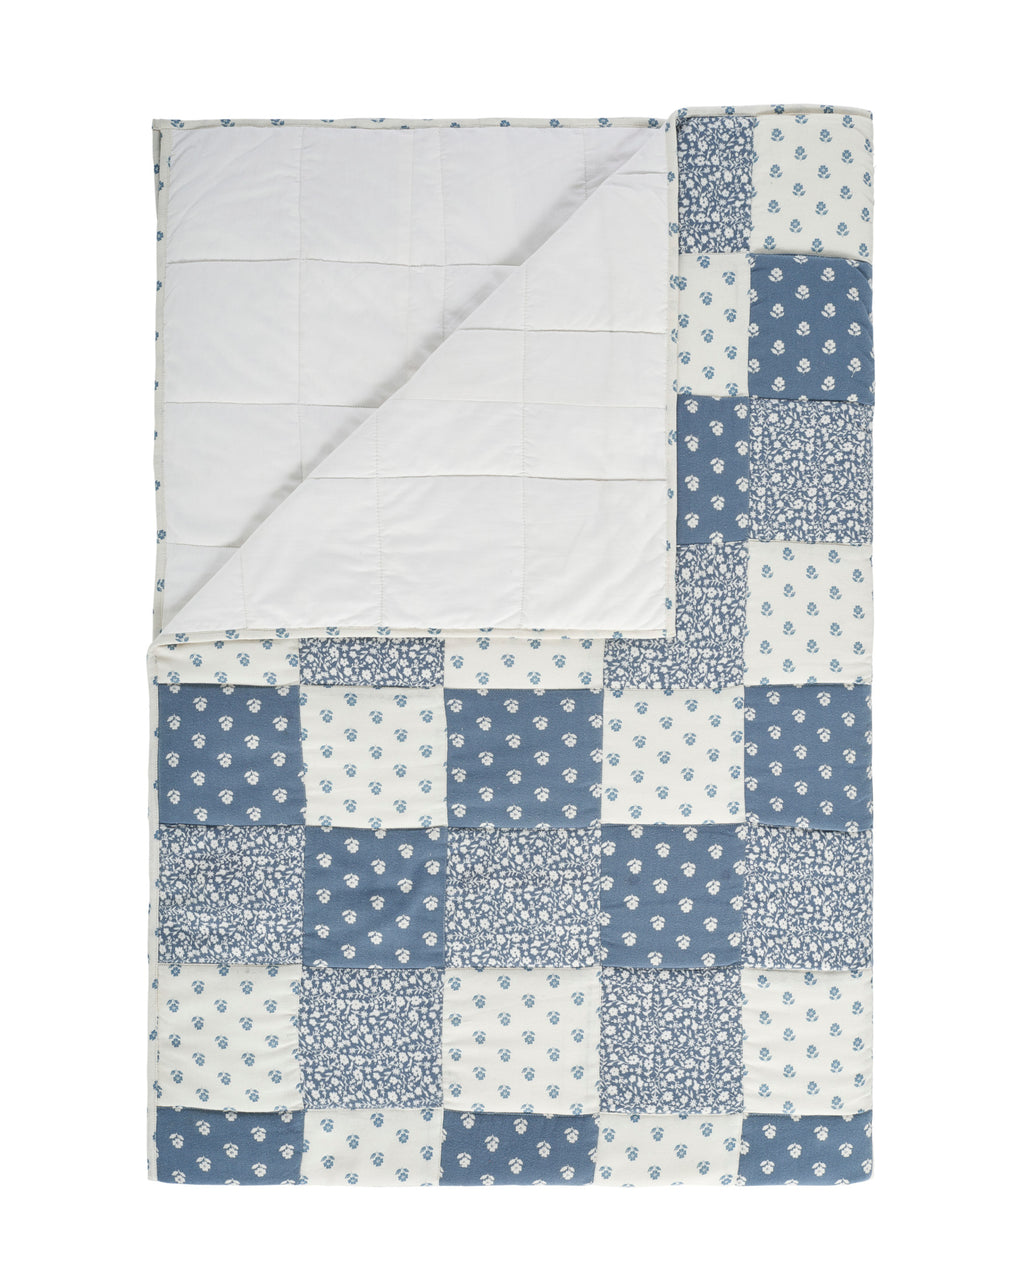 Patchwork blanket -small - blue floral